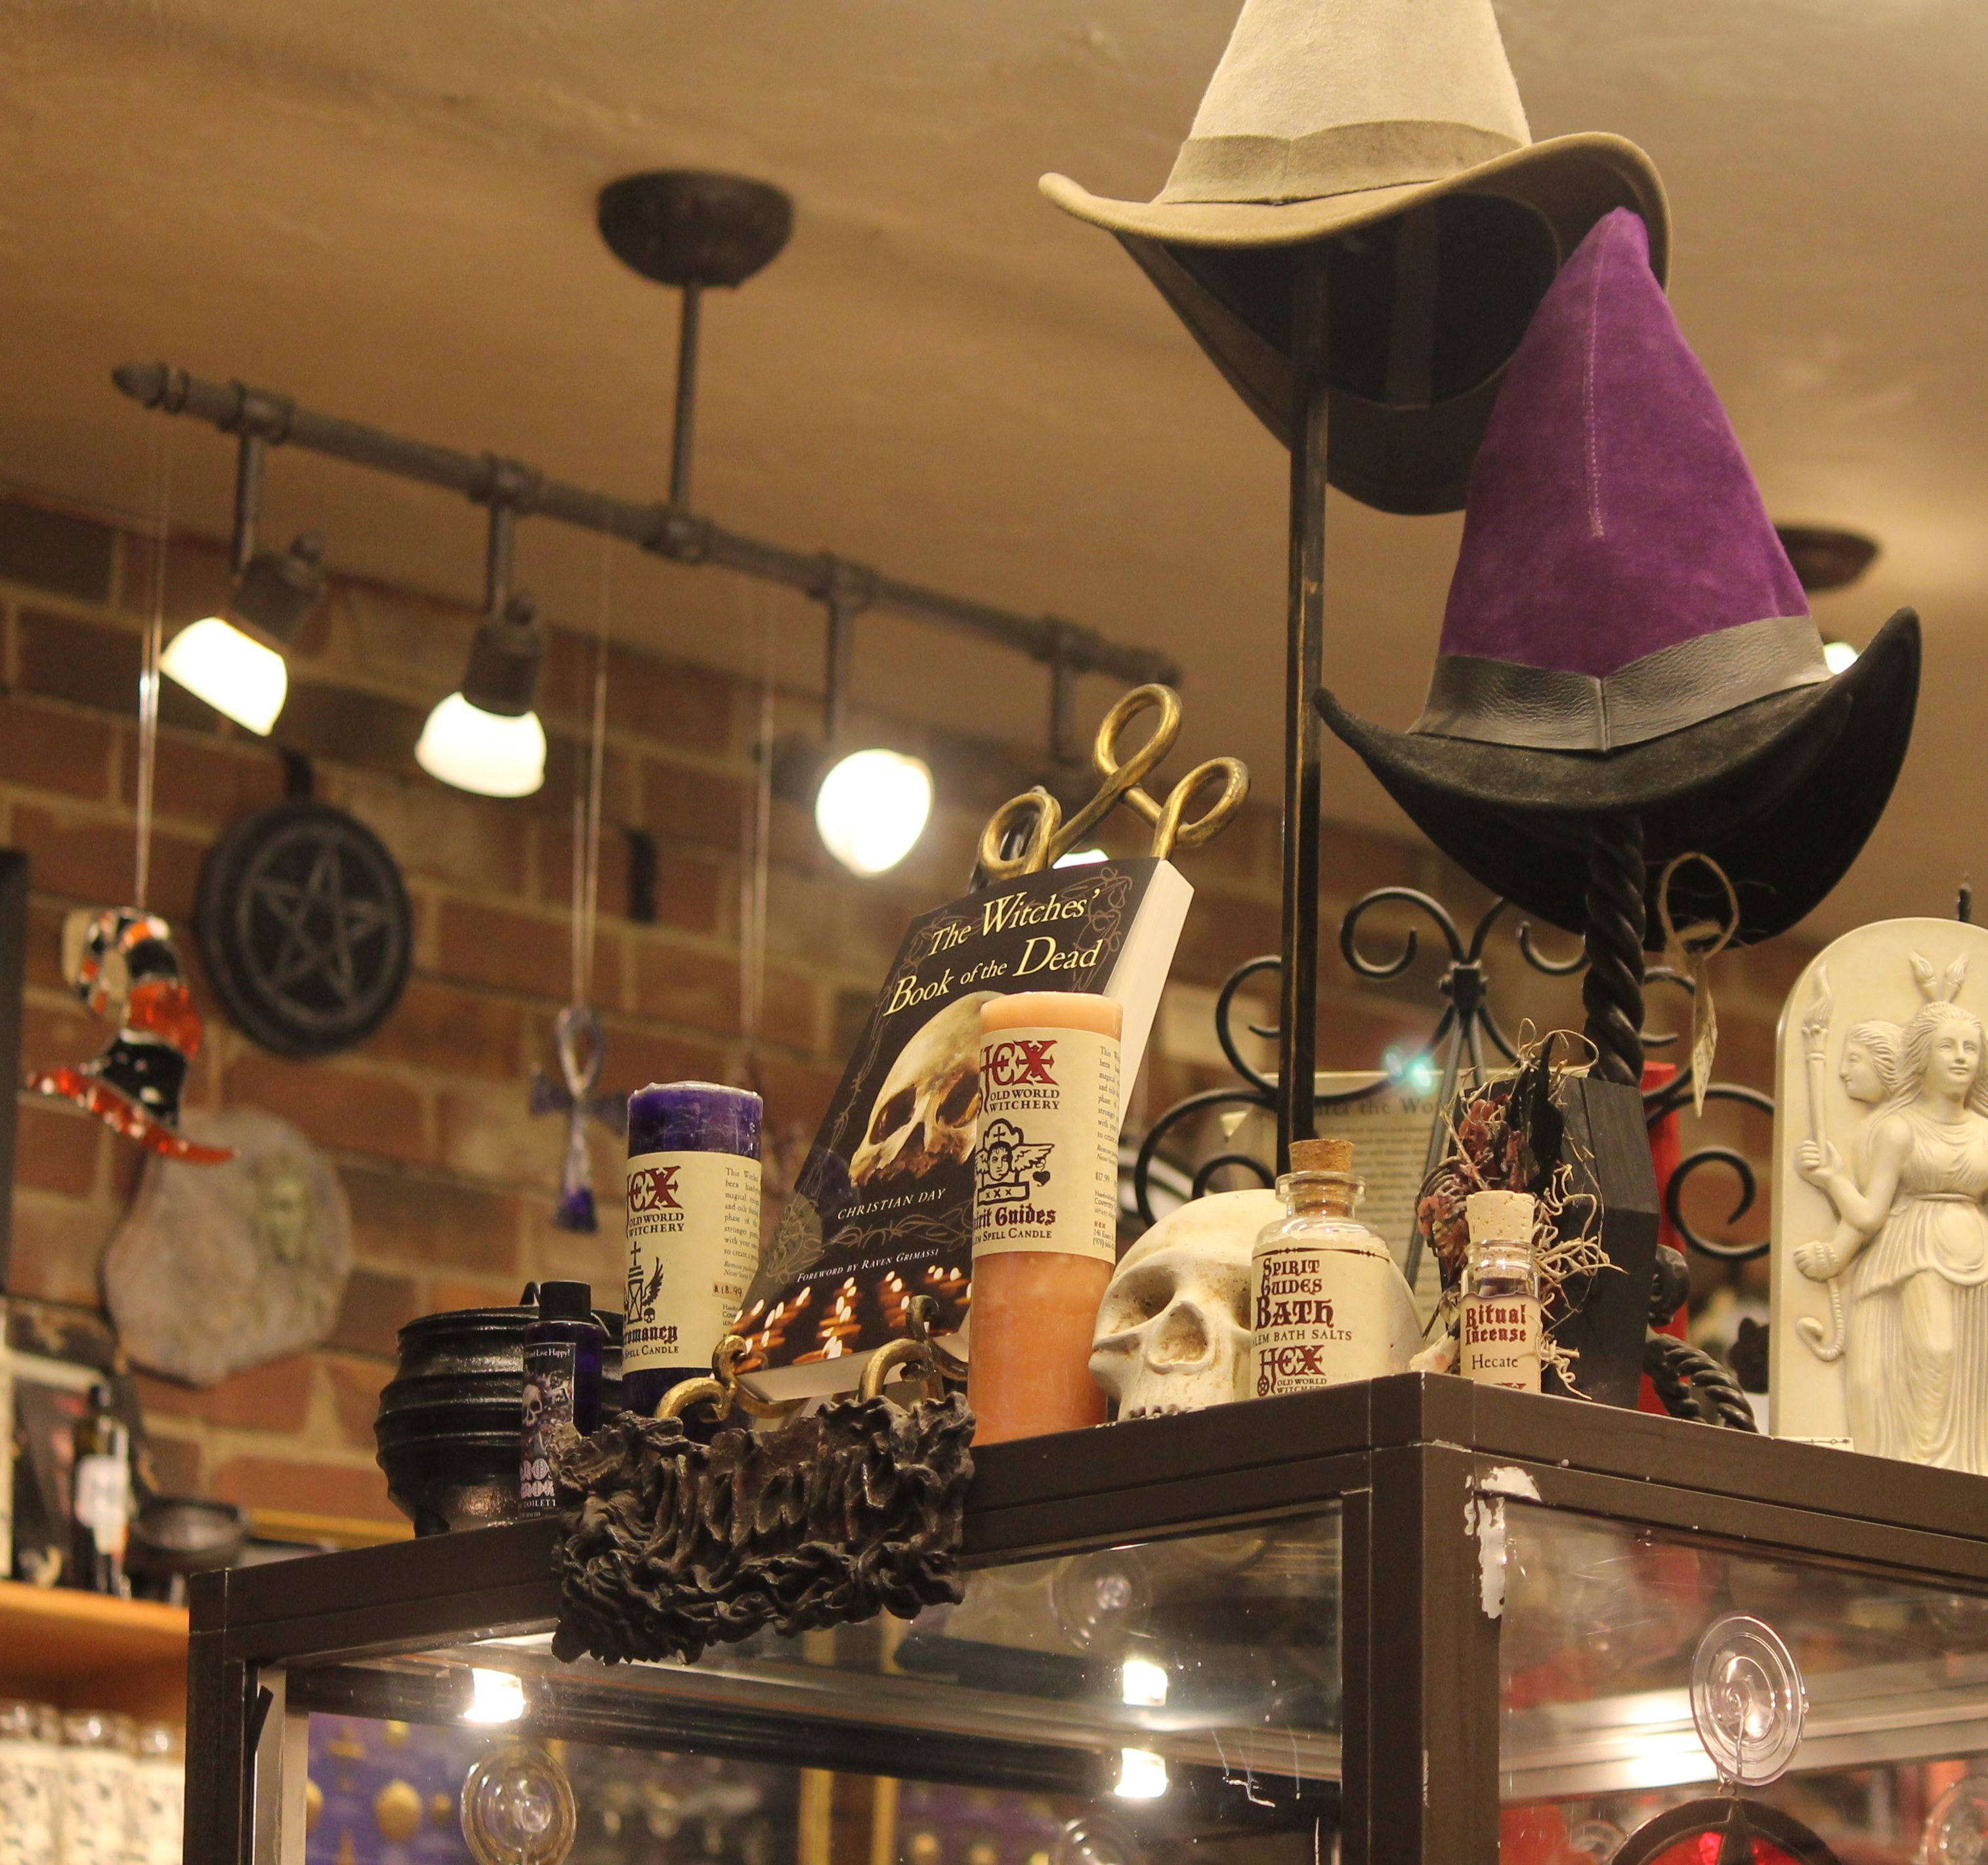 Lori Bruno S Shop In Salem Ma Witch Store Witchcraft Old World